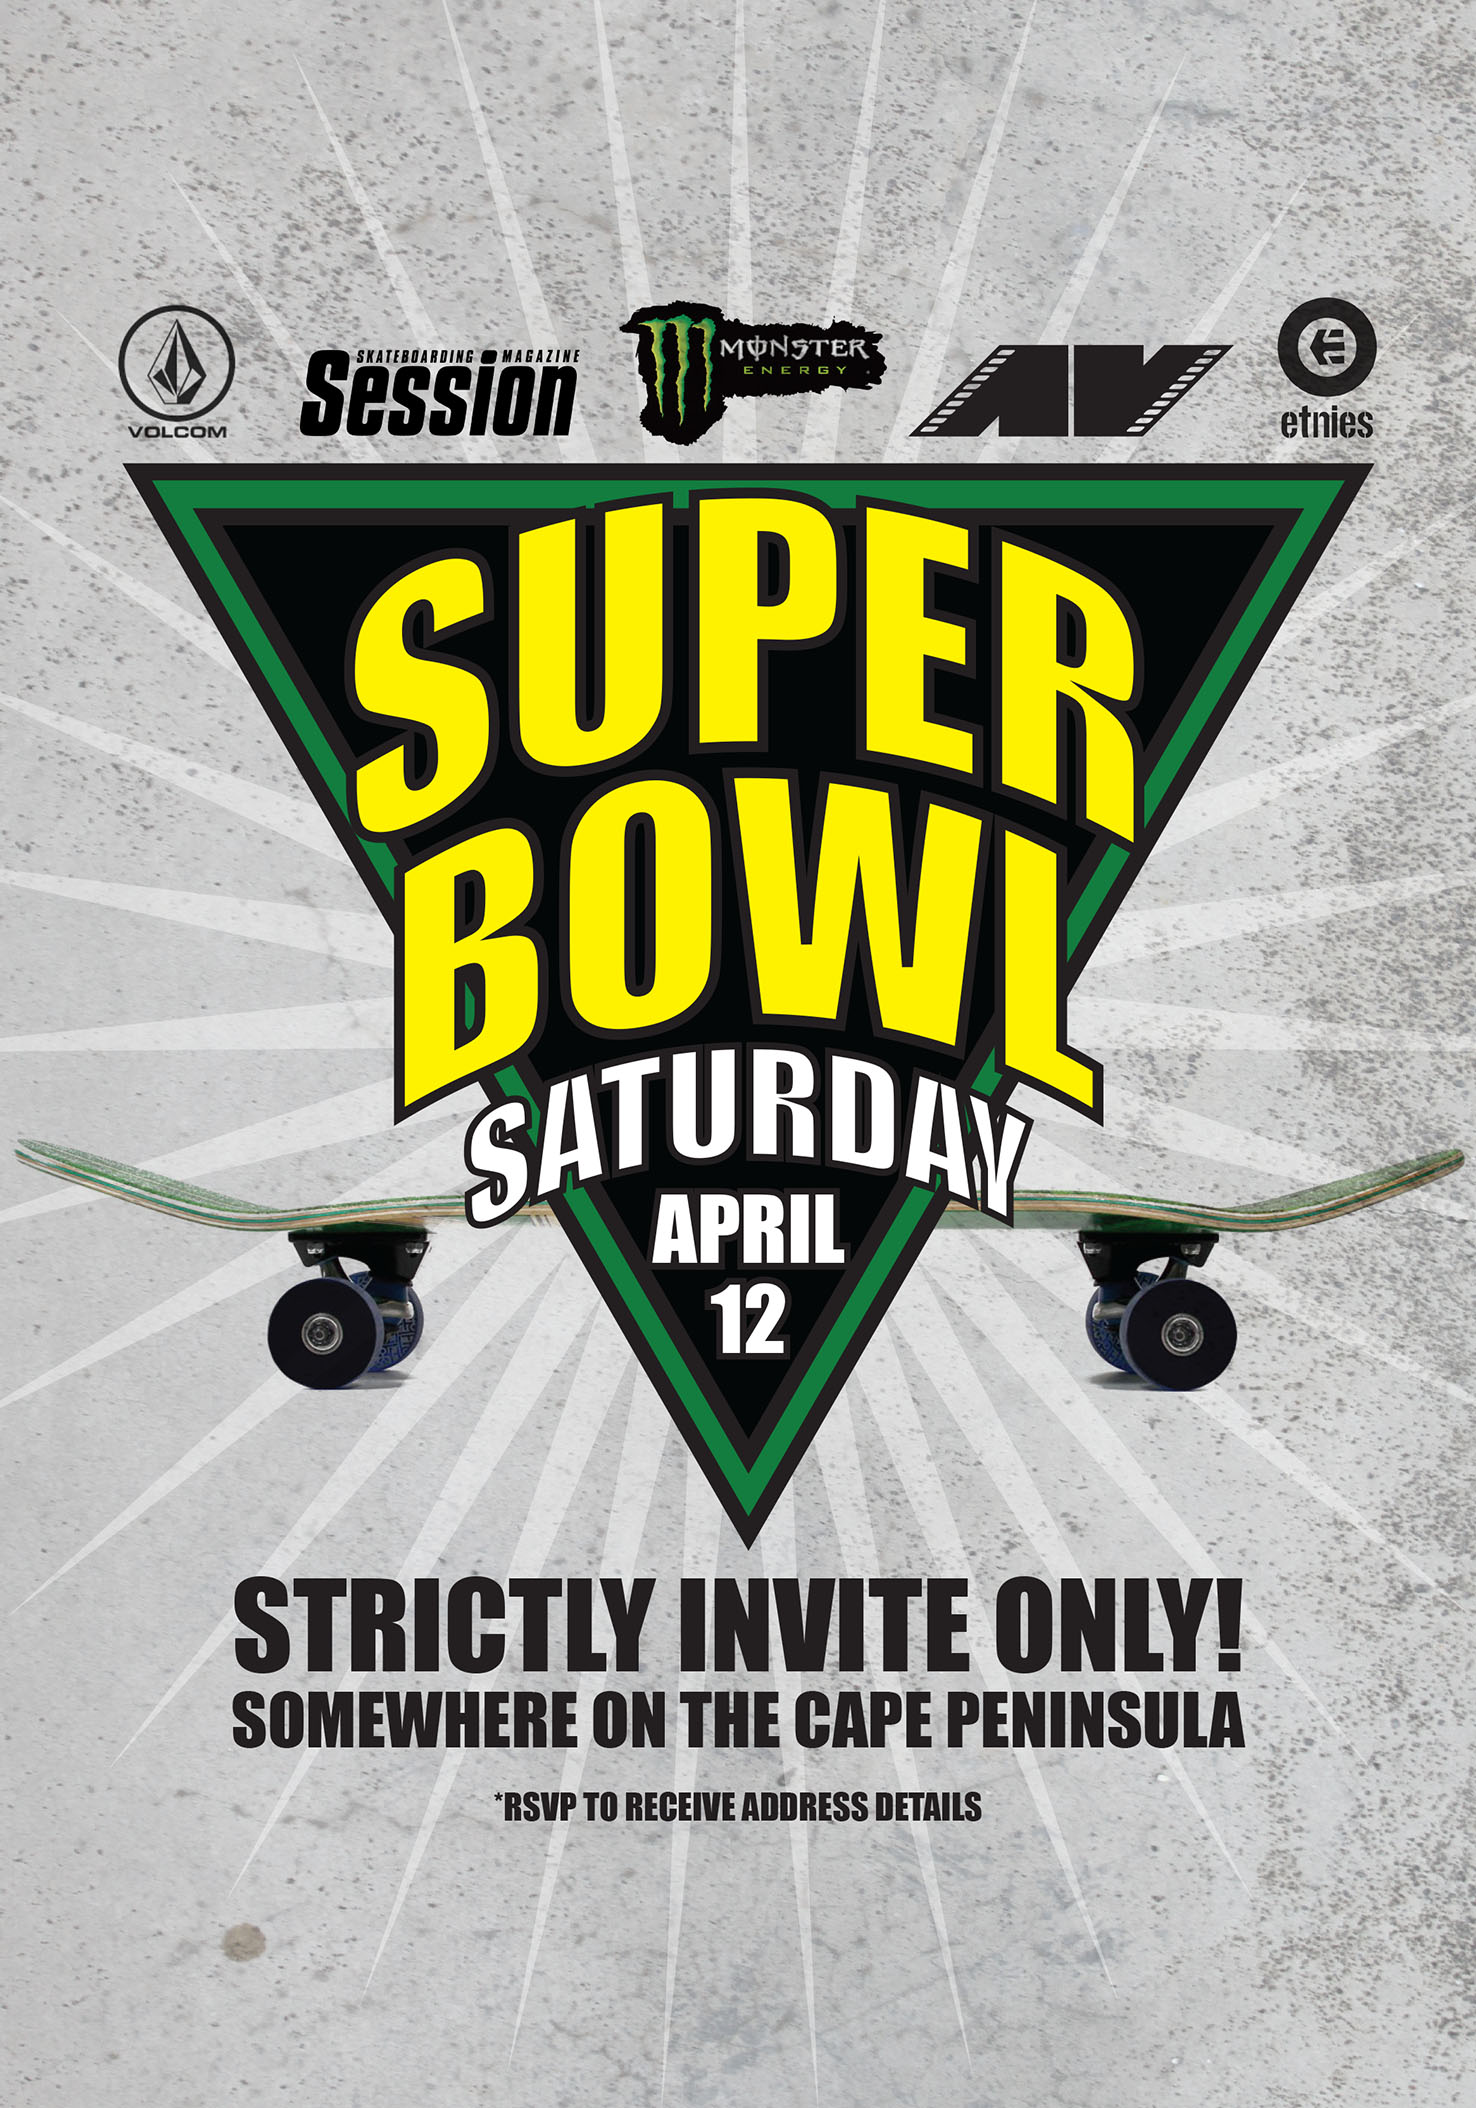 Suberbowl-Saturday-FLIER